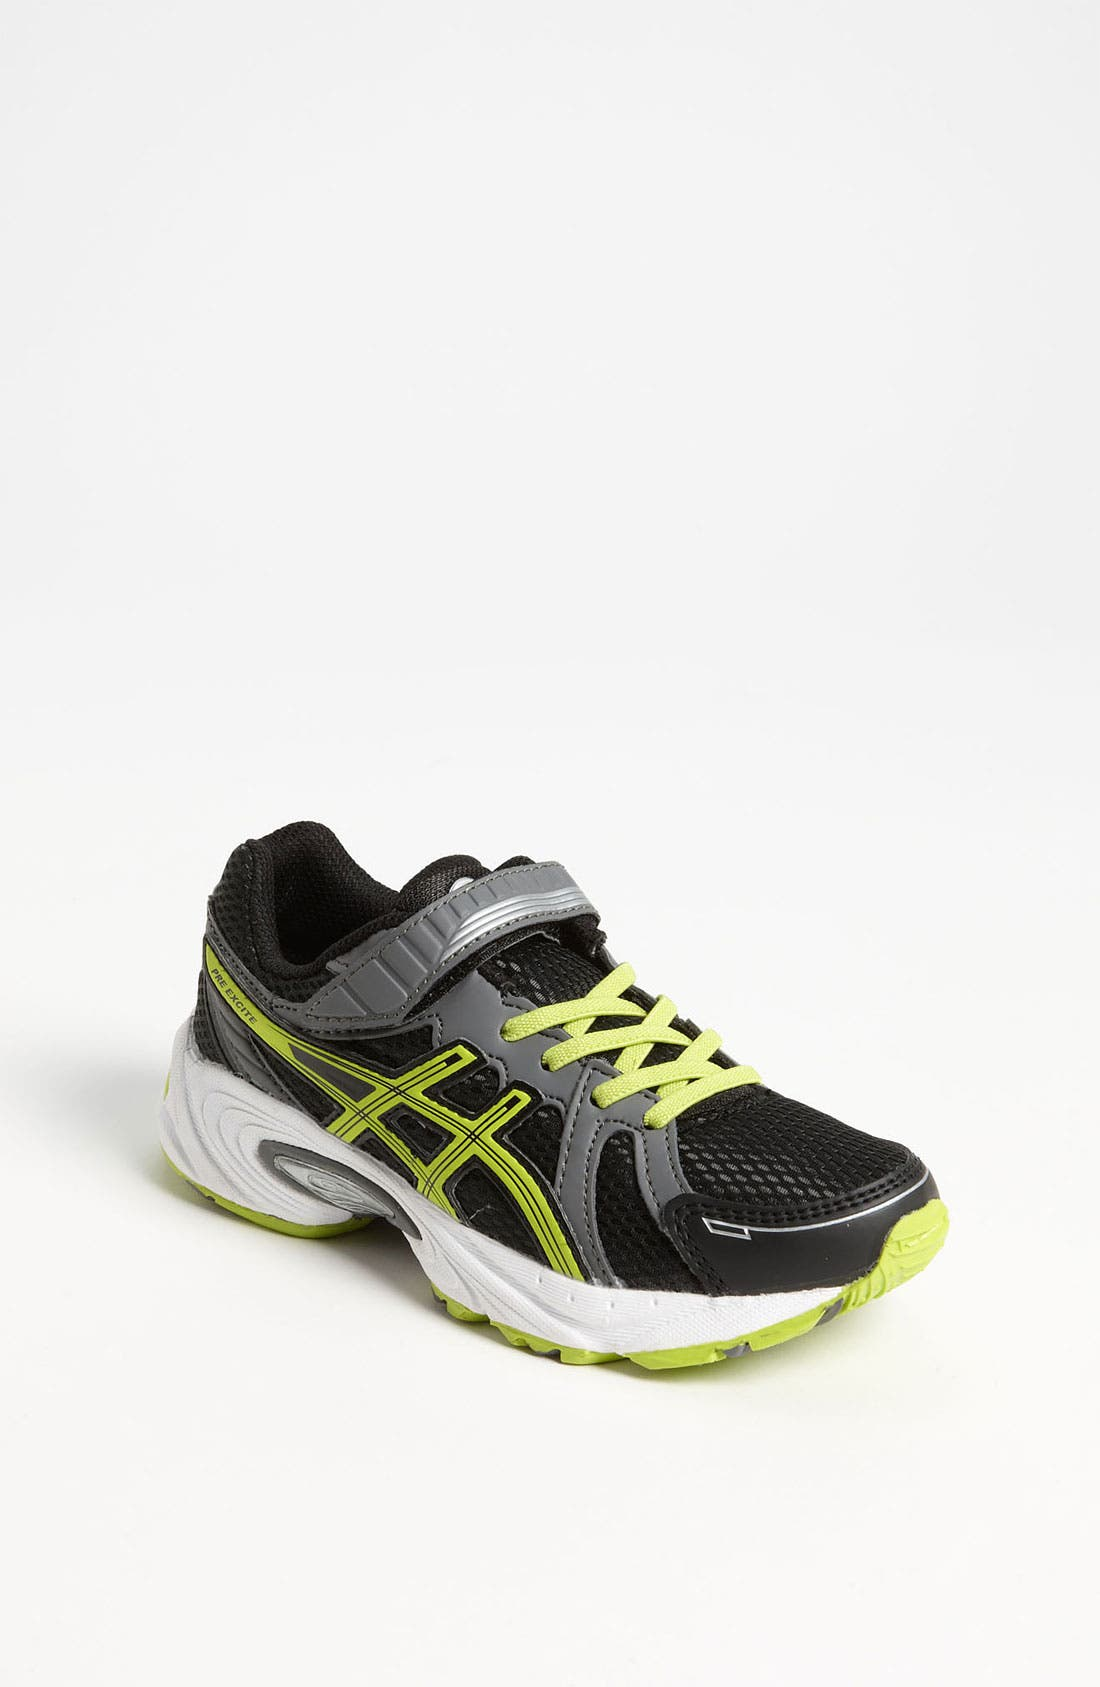 Alternate Image 1 Selected - ASICS® 'PRE-Excite™ PS' Sneaker (Toddler & Little Kid)